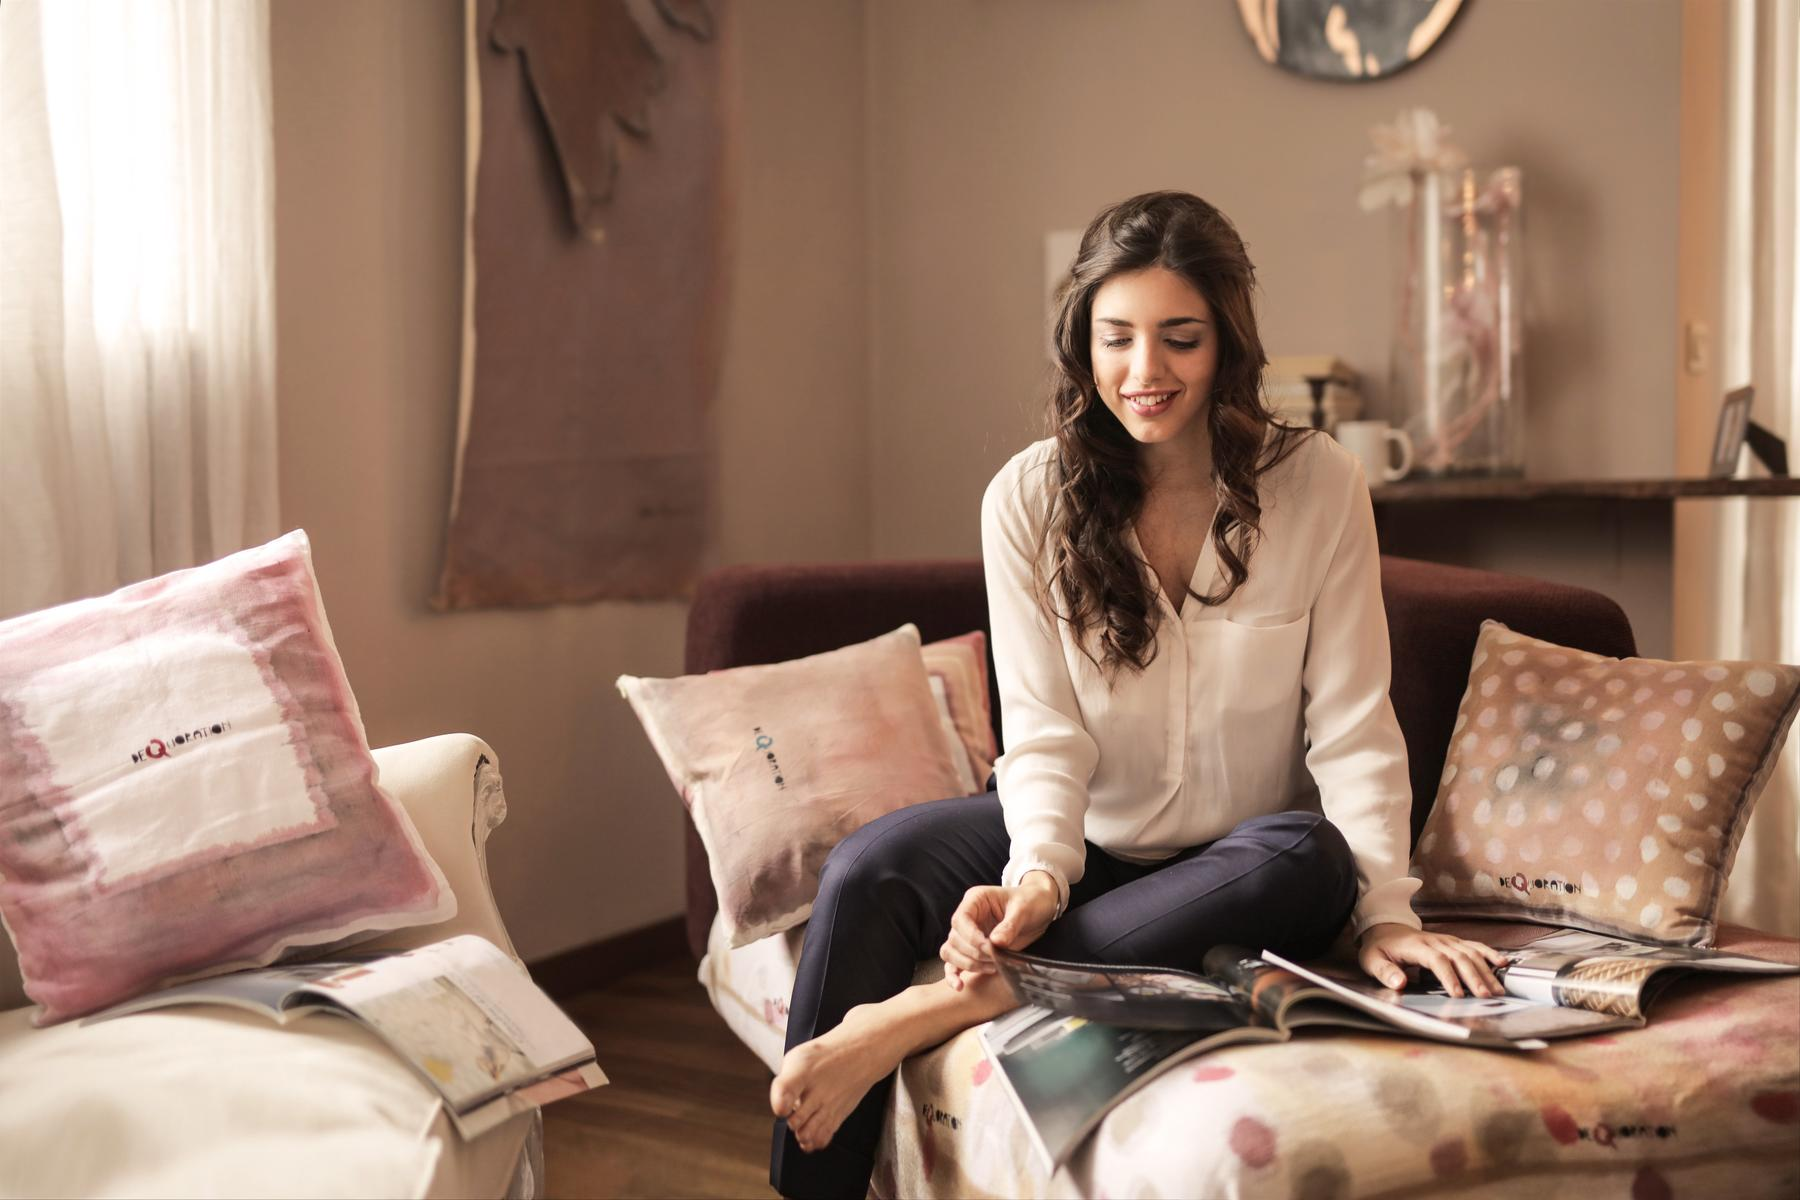 Woman Relaxing Reading Magazines on Couch